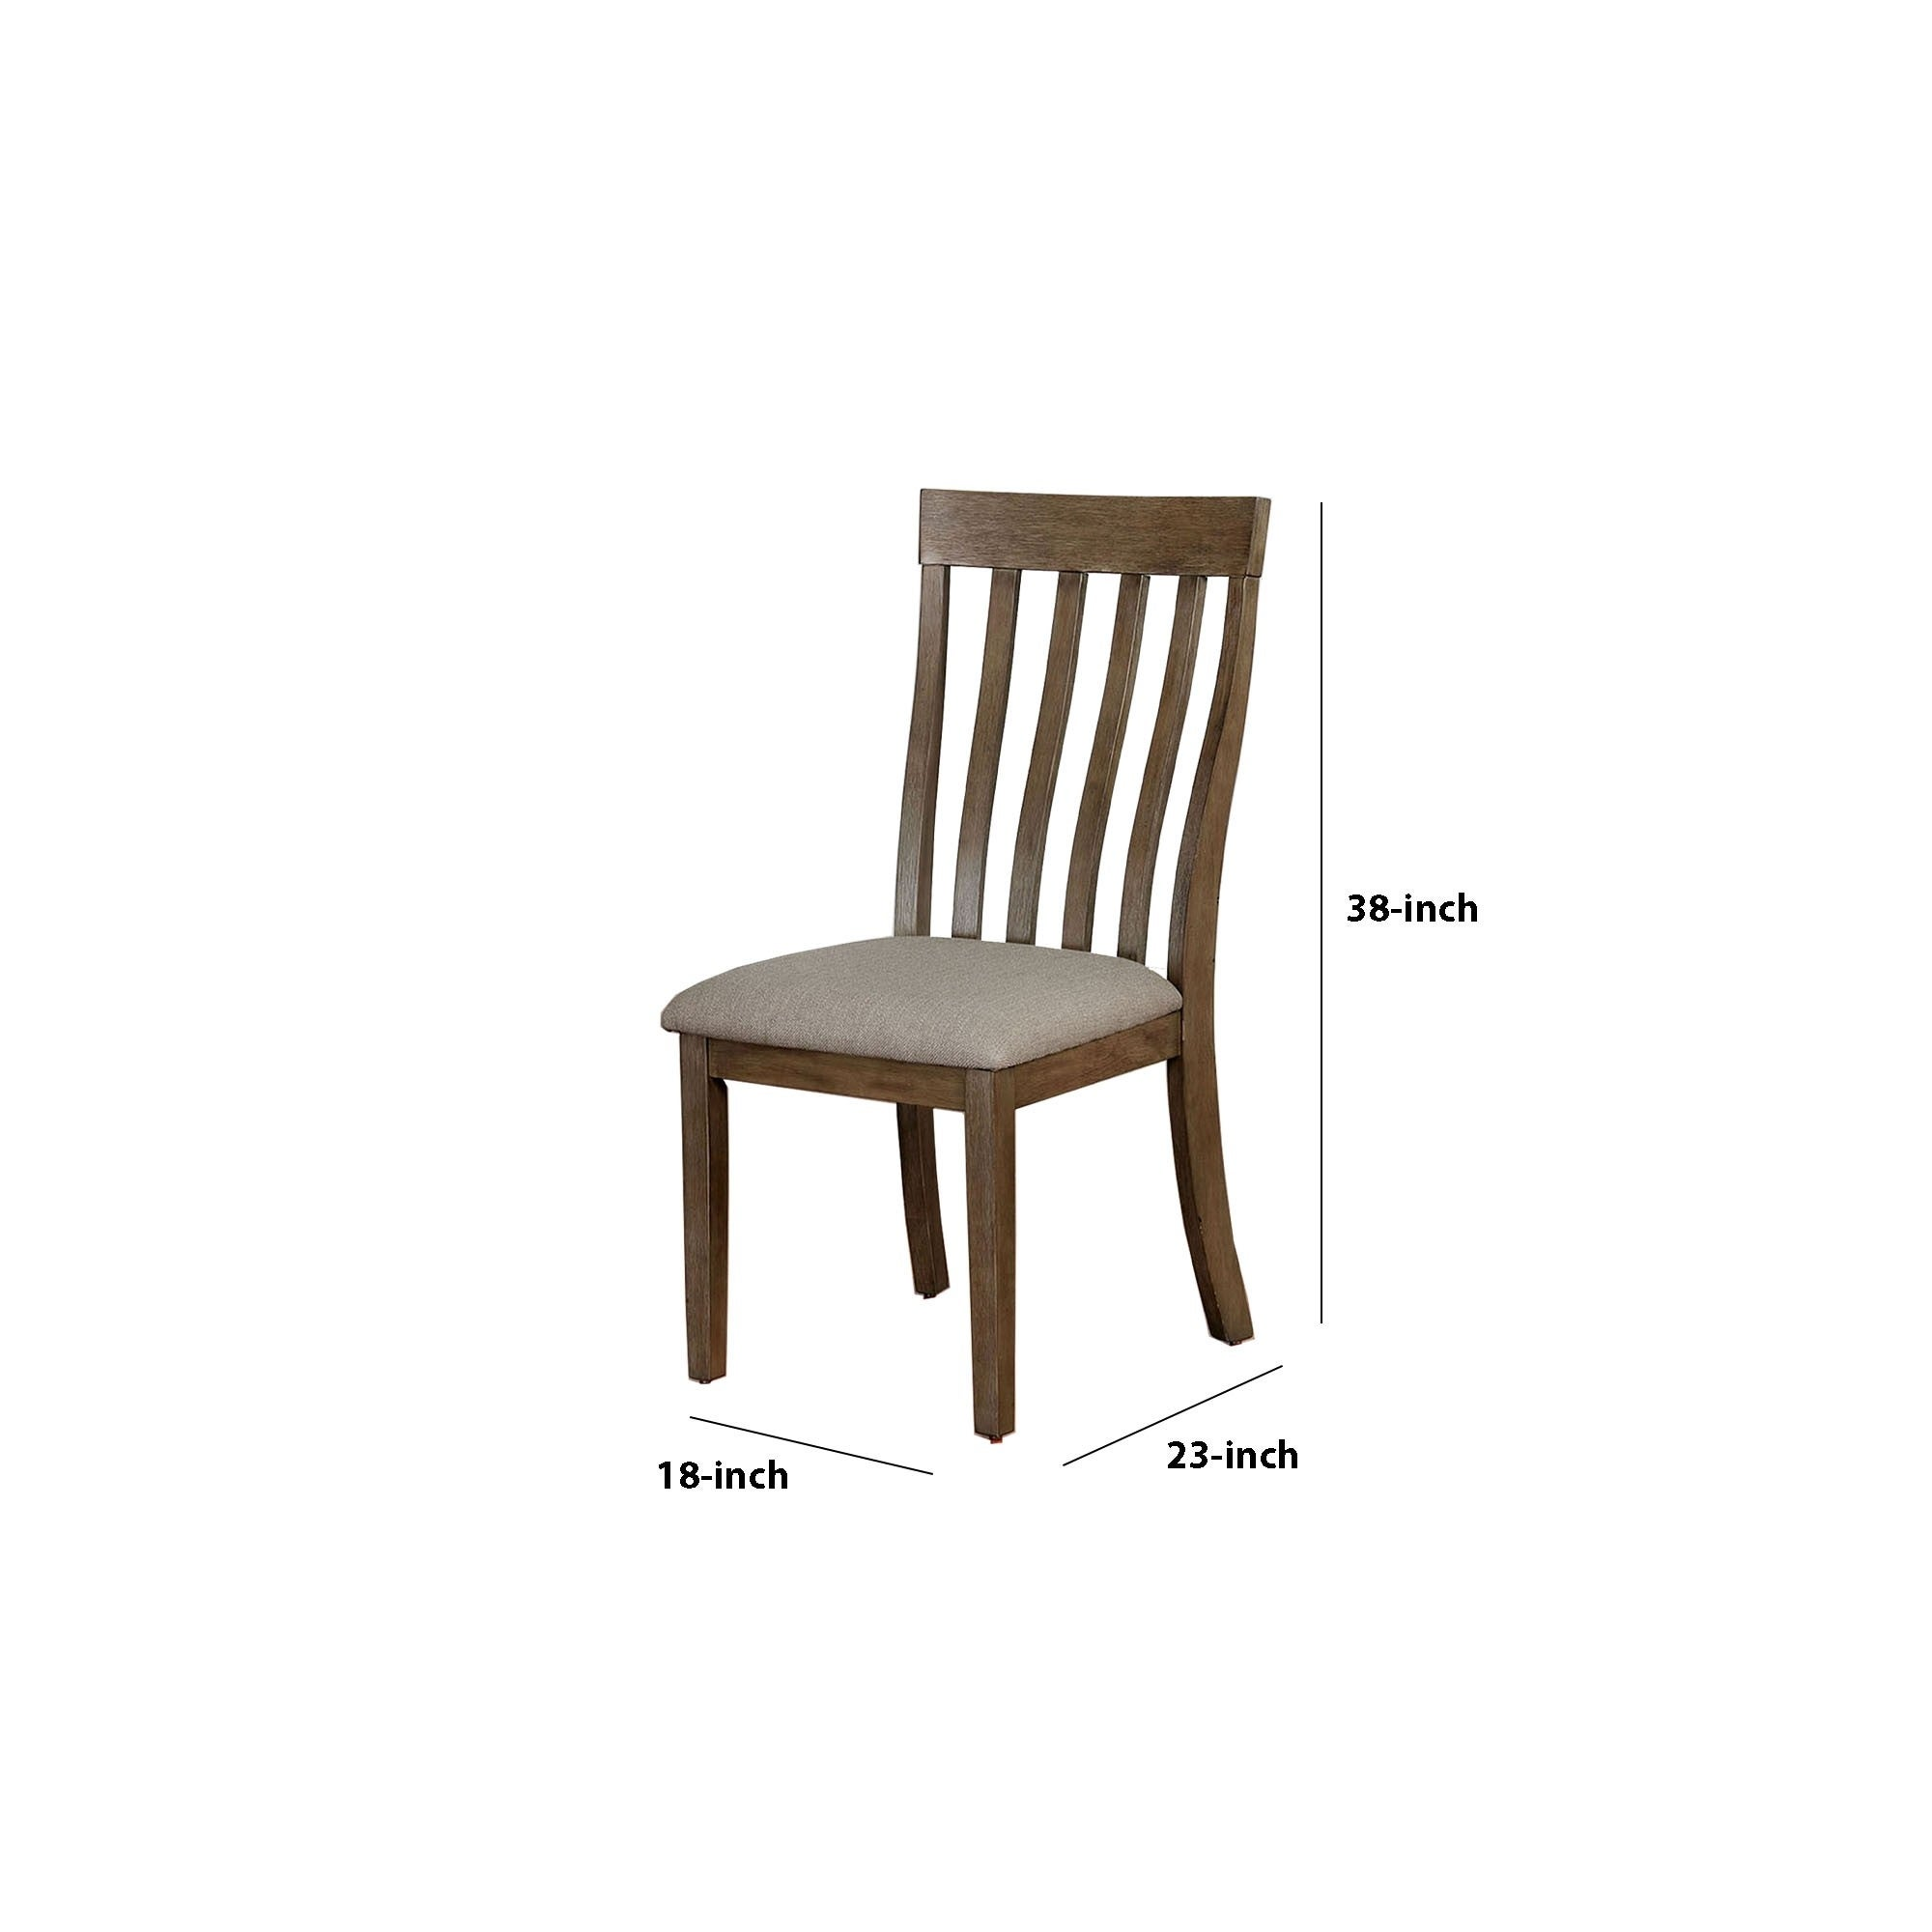 Contoured Slat Back Wood Side Chair Set Of 2 Taupe And Brown Overstock 32119133